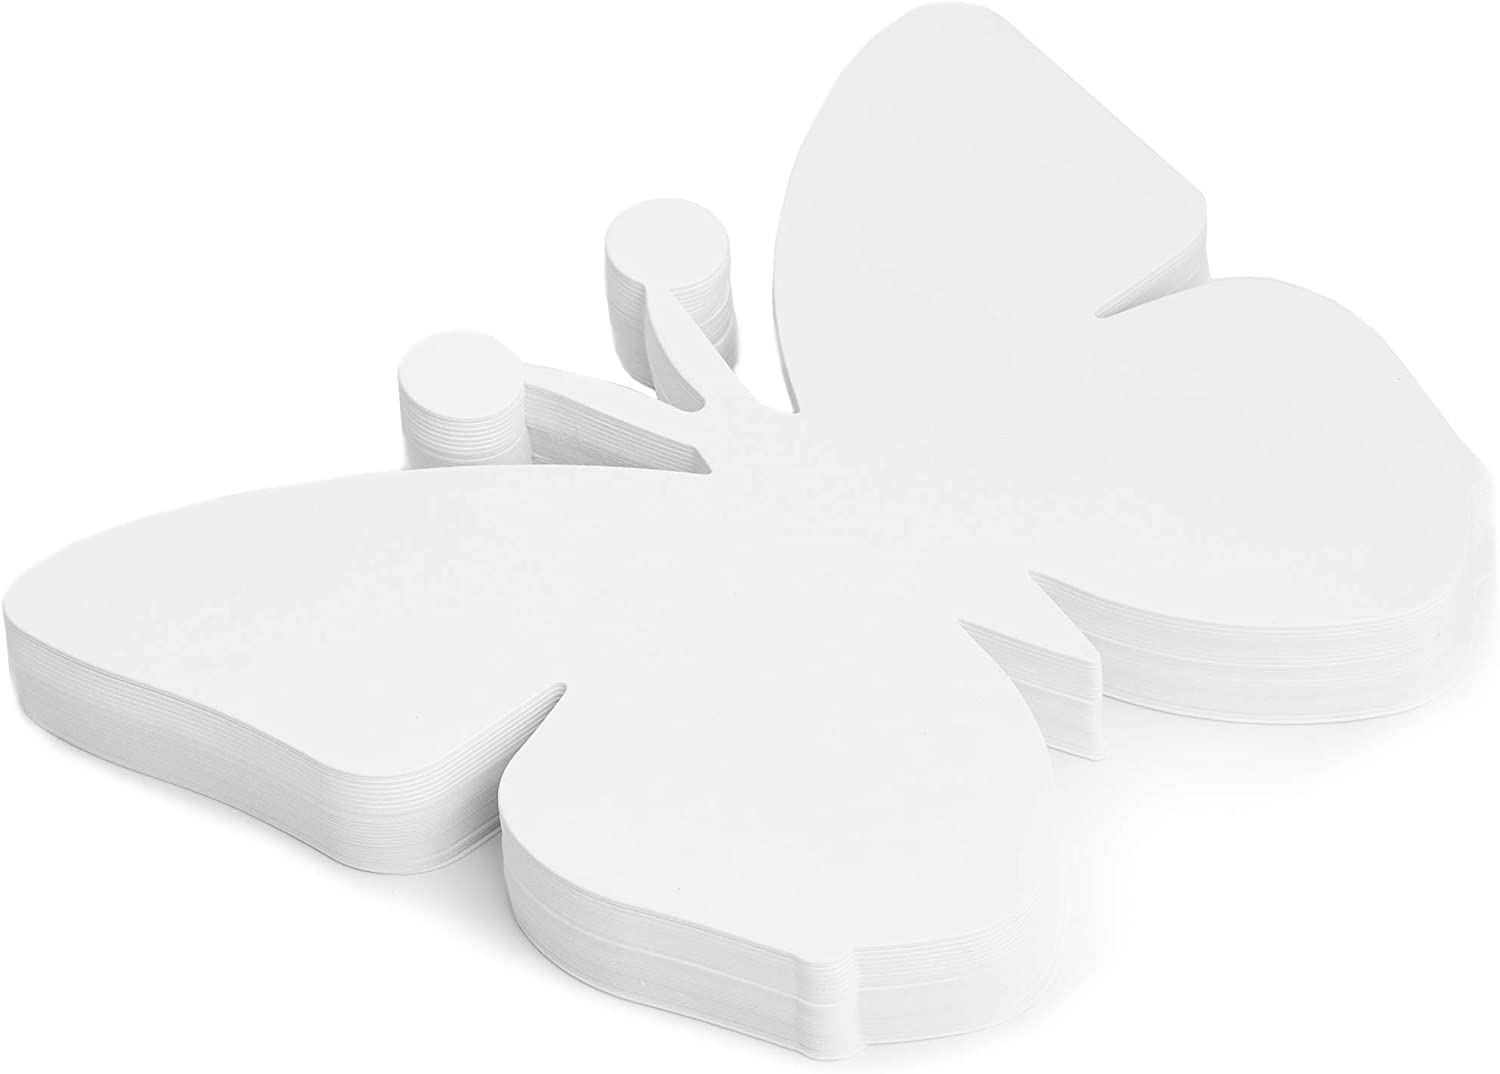 White Bright Creations Paper Cutout Shapes 7.5 x 6 Inches Butterfly 50 Count